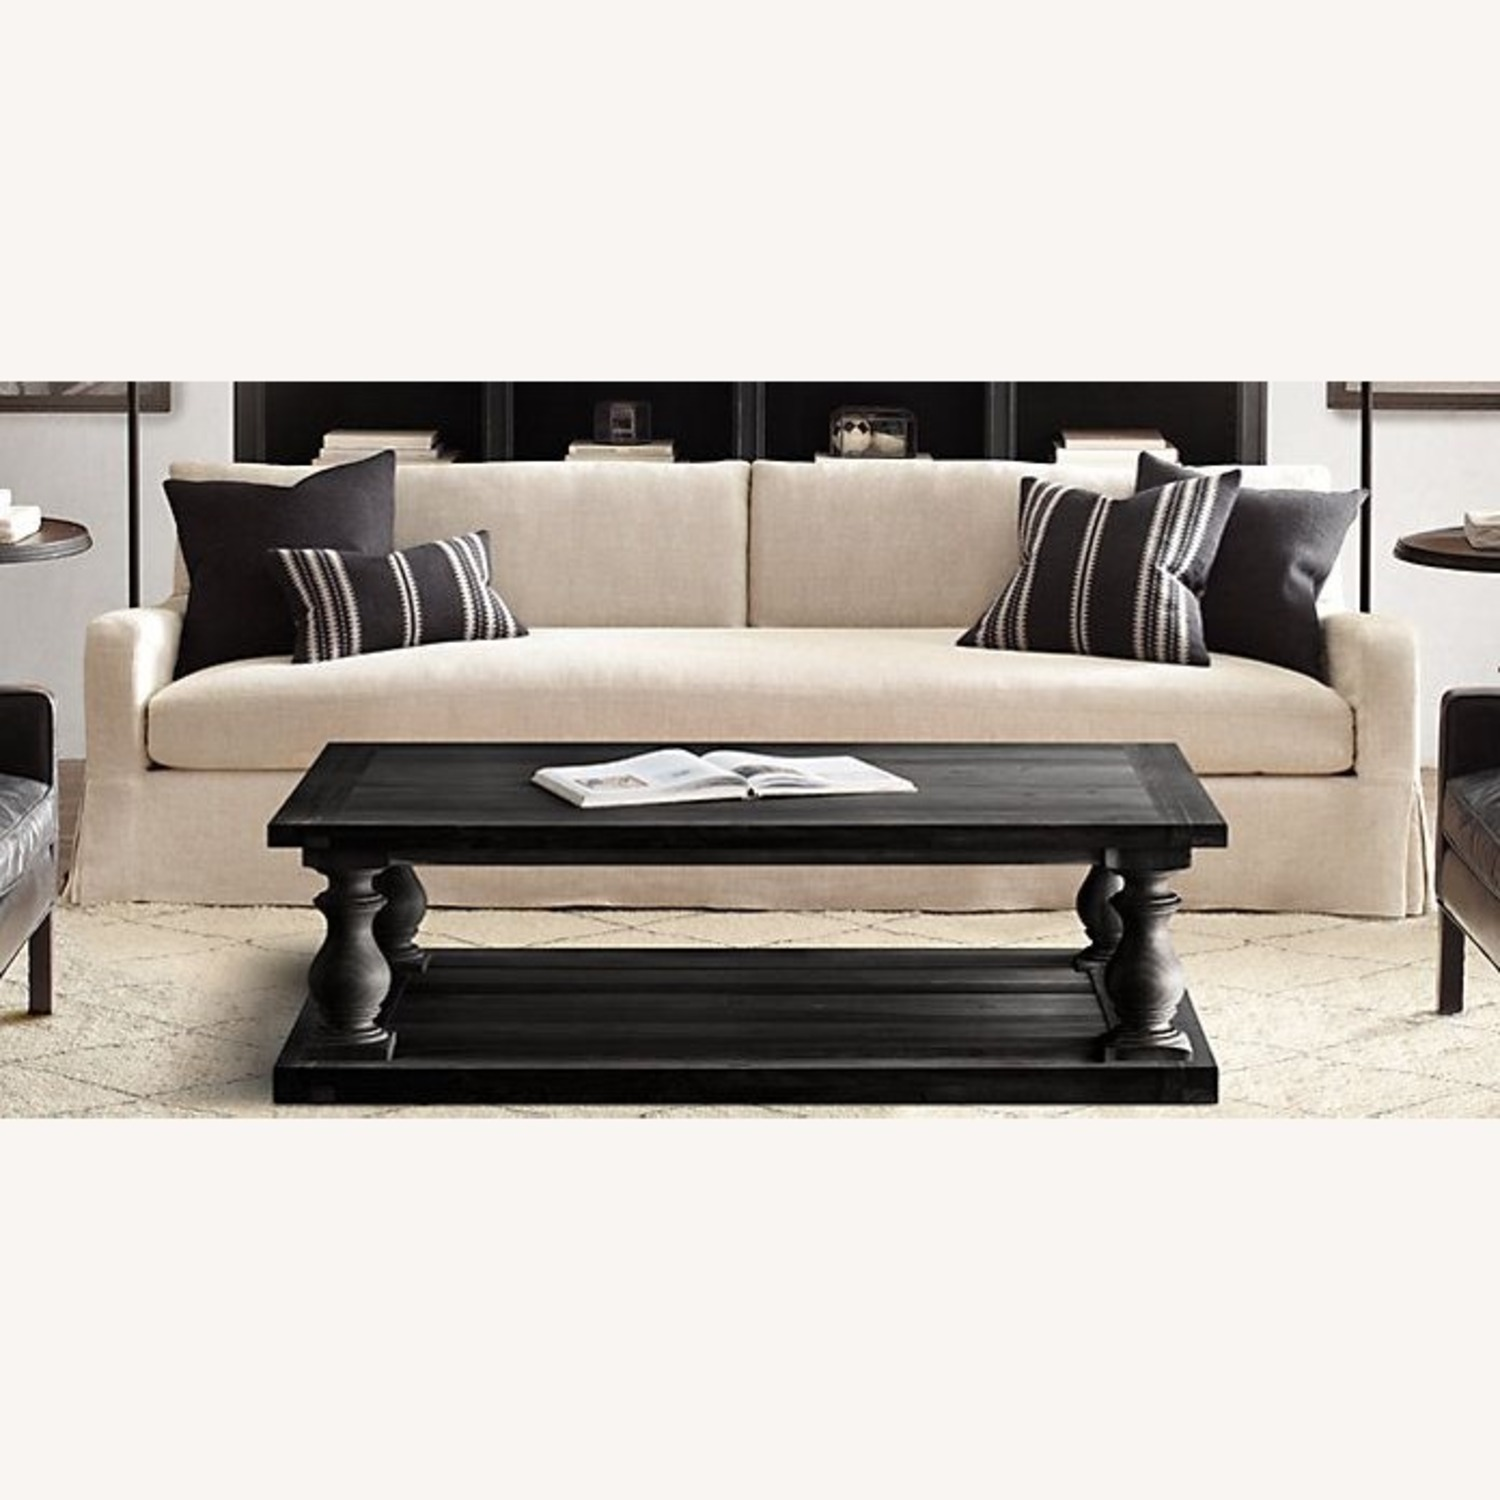 Restoration Hardware Dark Brown Coffee Table - image-2